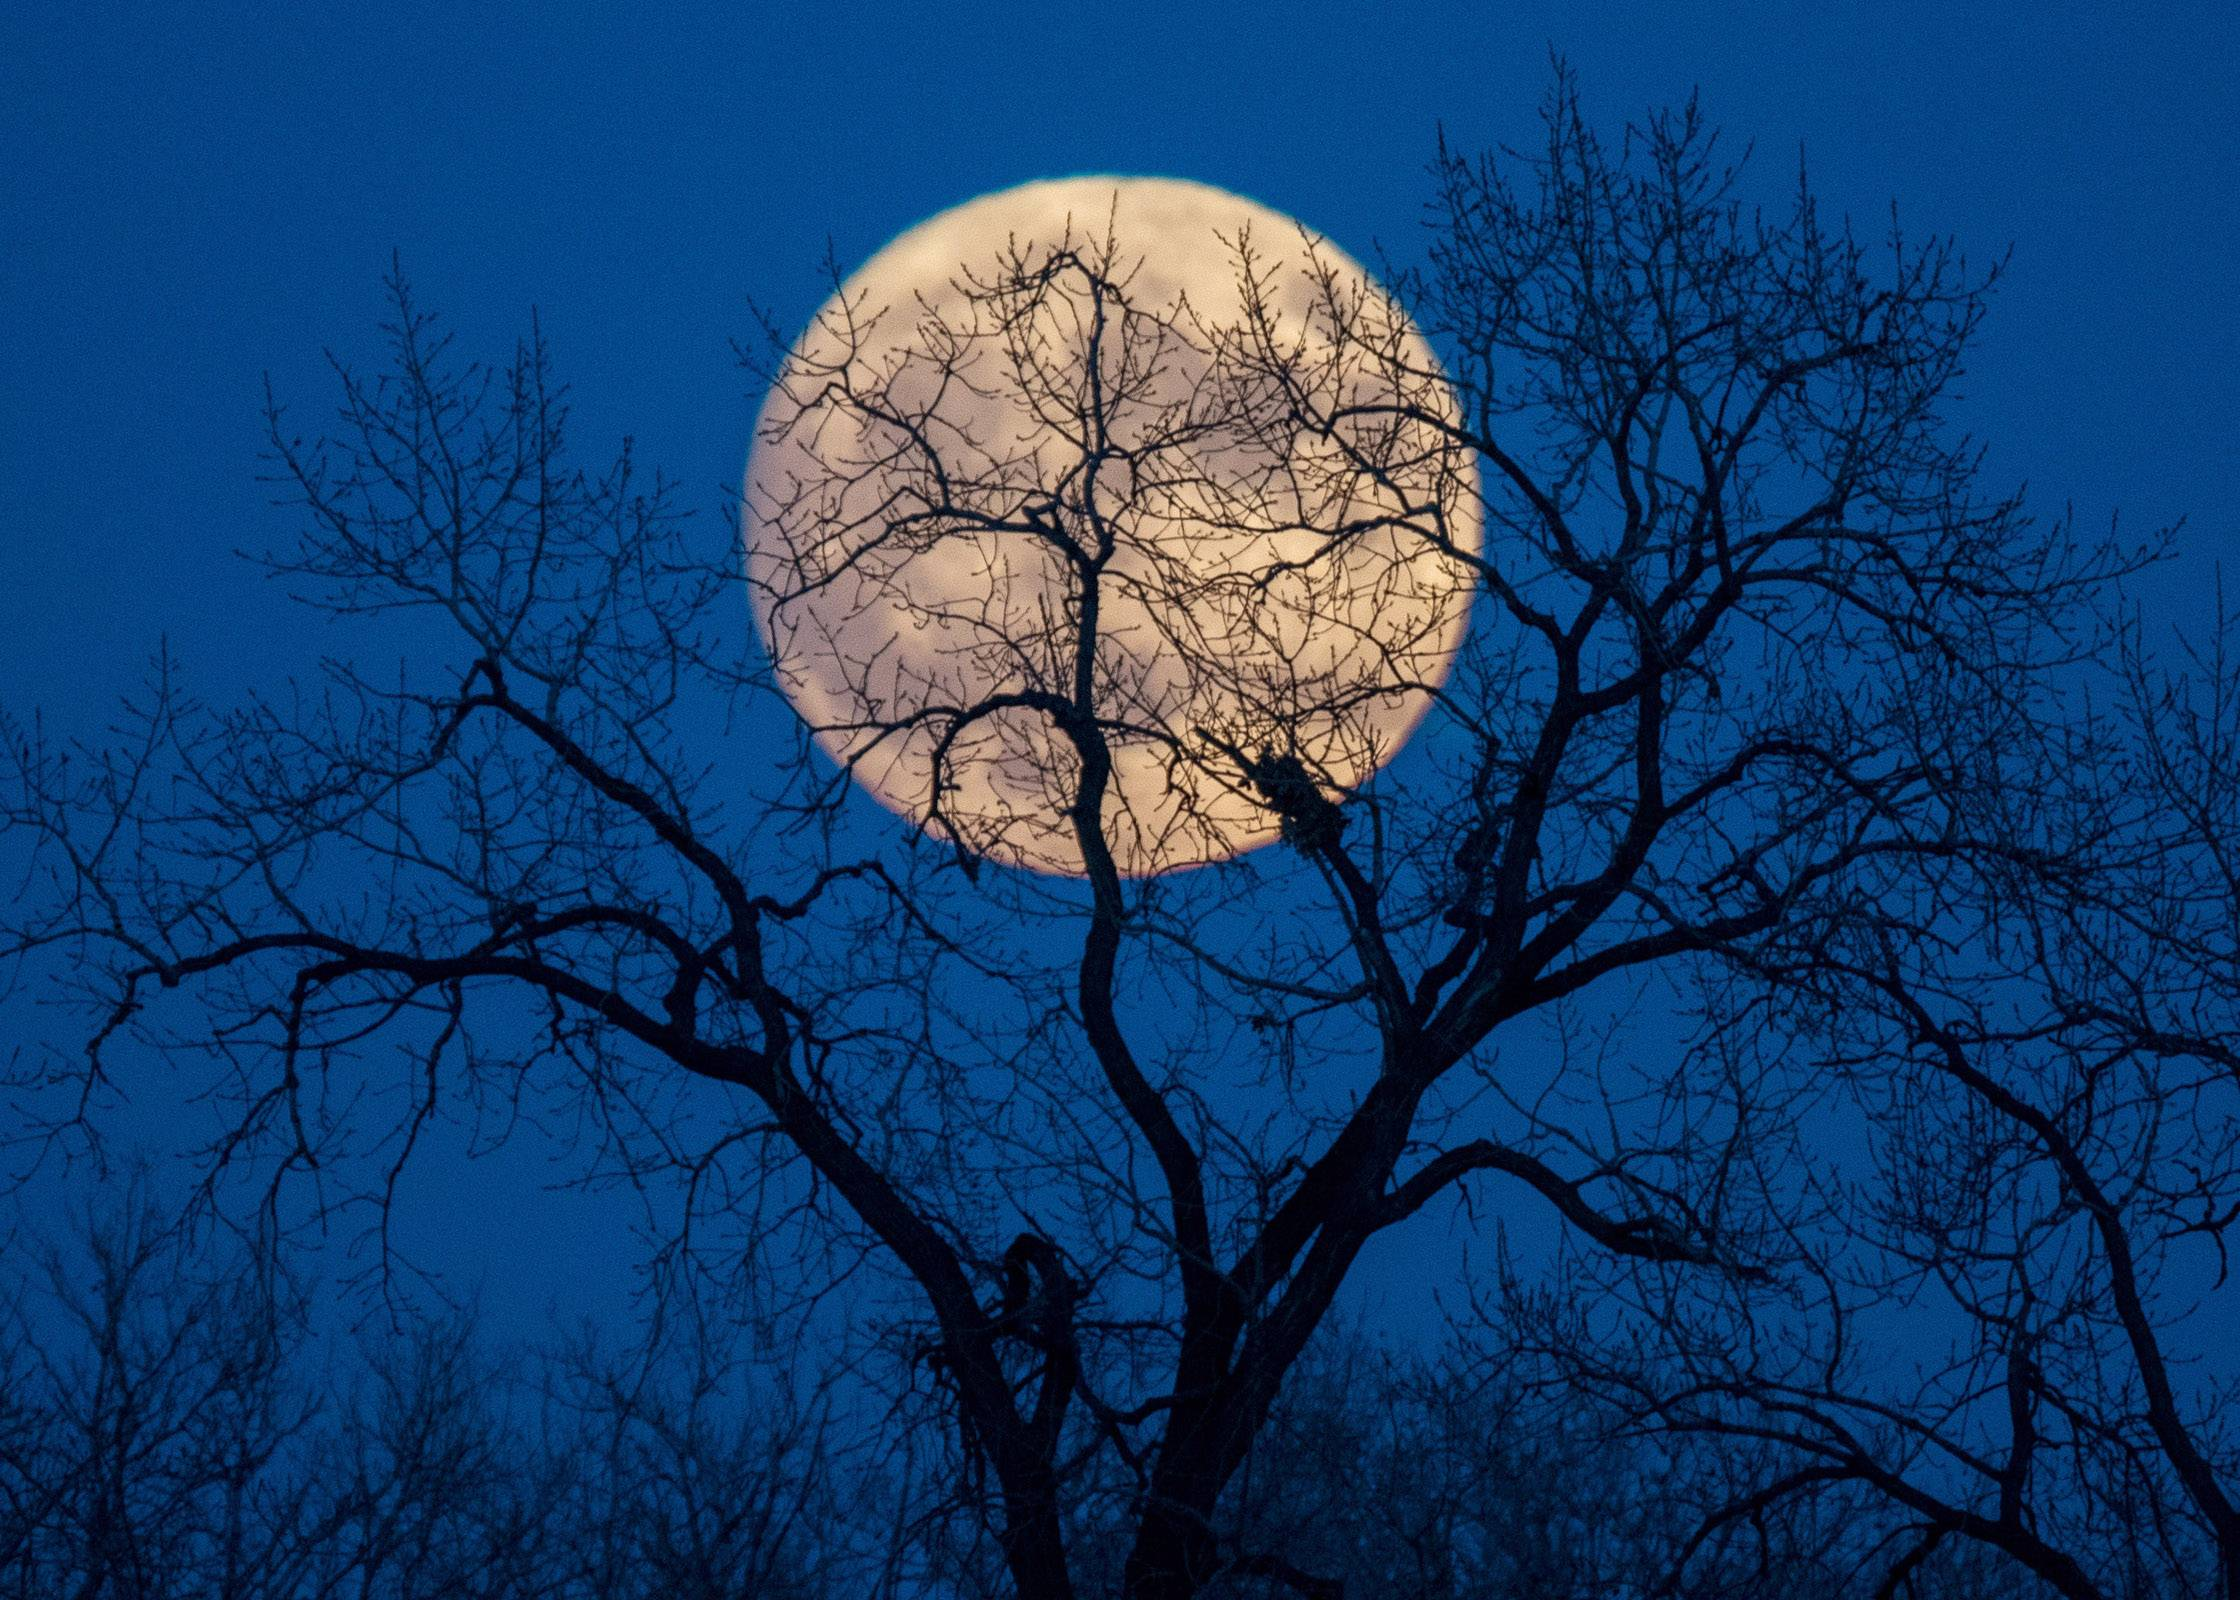 The super moon hides behind a leafless tree creating mystery in Mount Prospect on November 13.